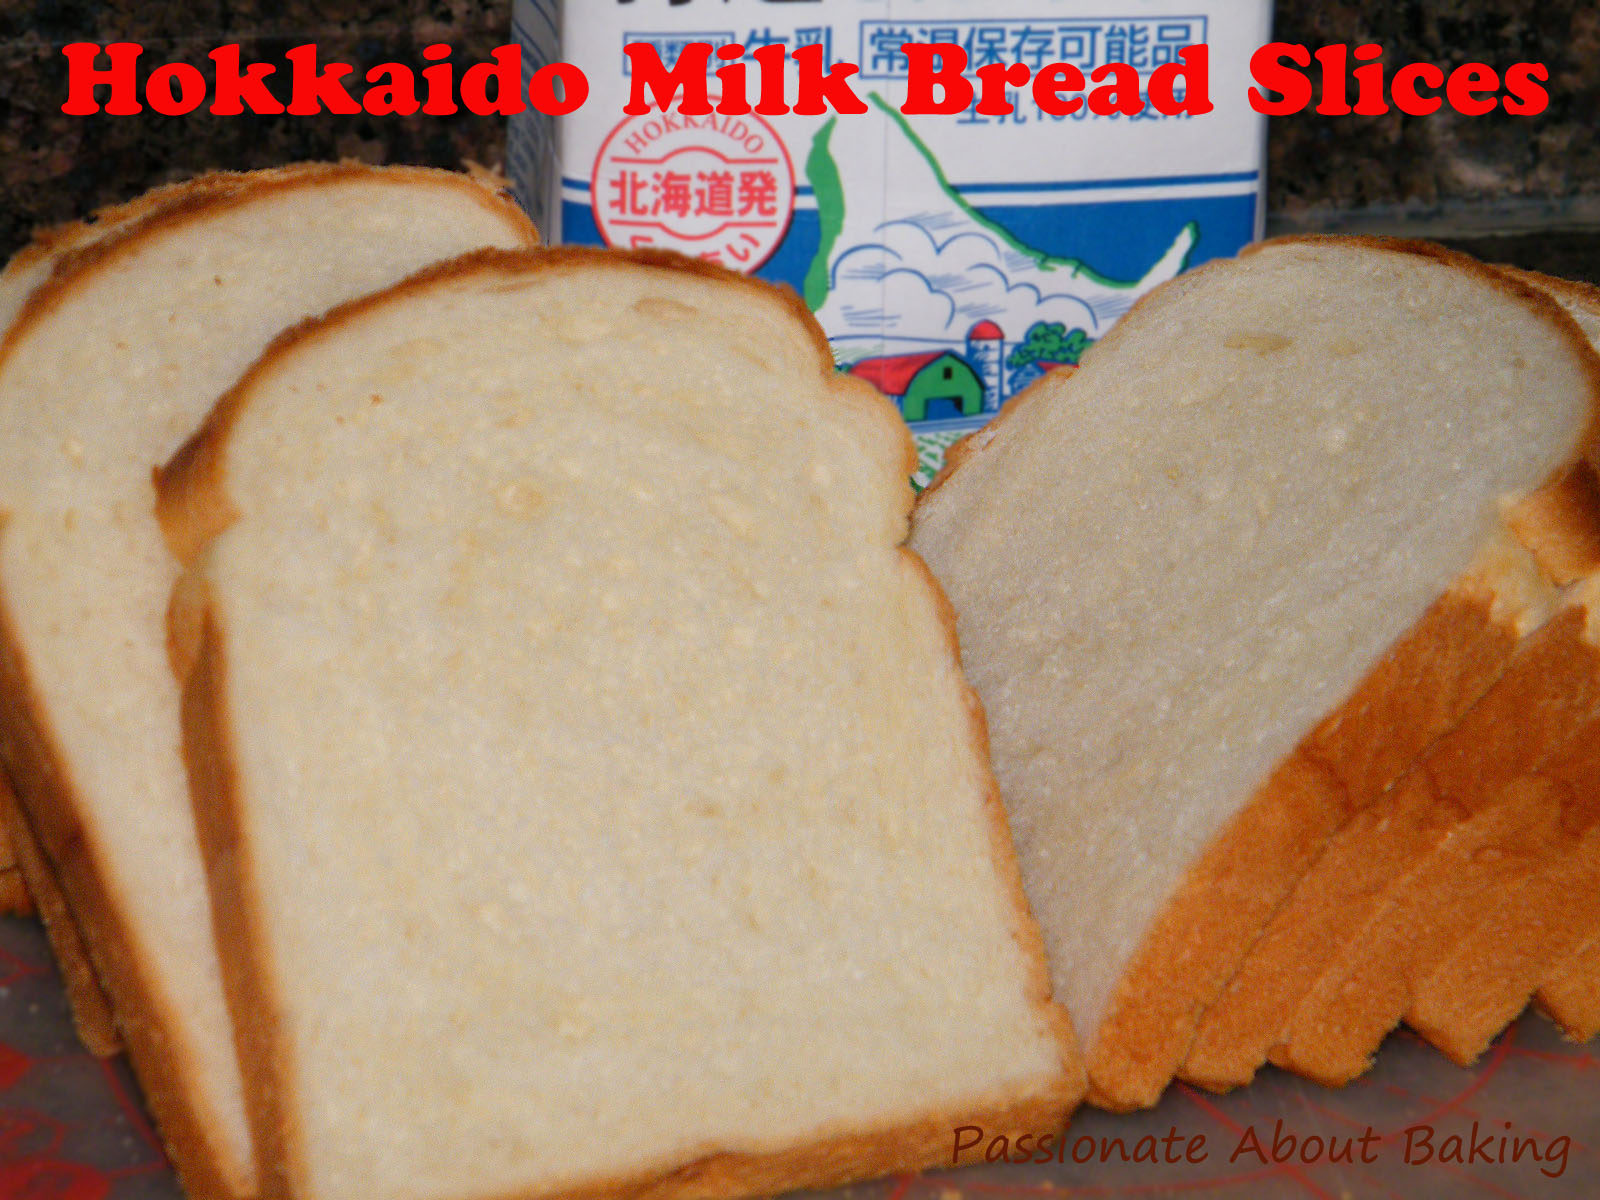 Cch lm bnh bread hokkaido2 Cch lm bnh m sa Hokkaido